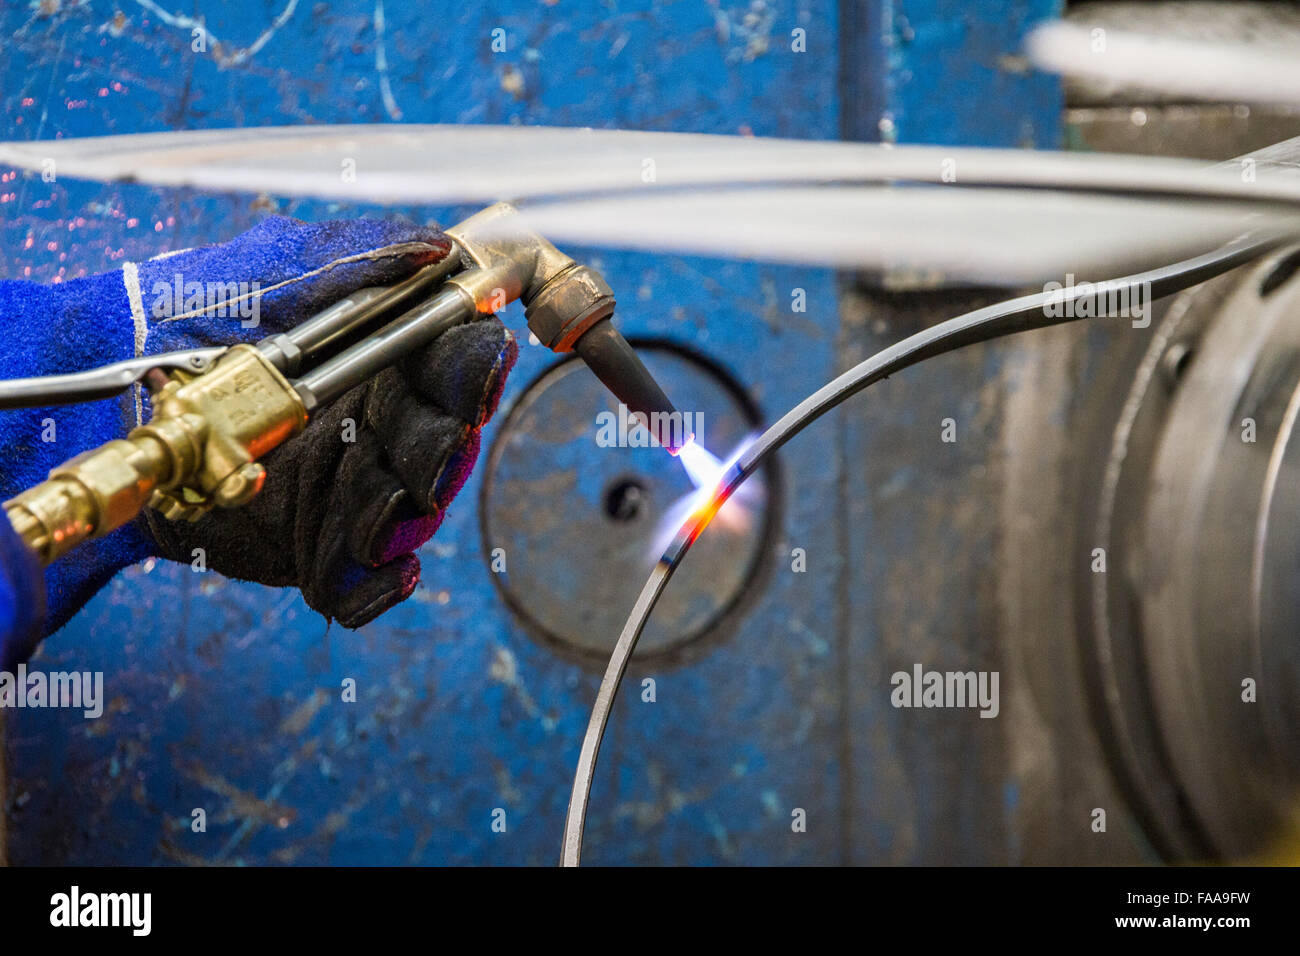 oxyacetylene stockfotos oxyacetylene bilder alamy. Black Bedroom Furniture Sets. Home Design Ideas